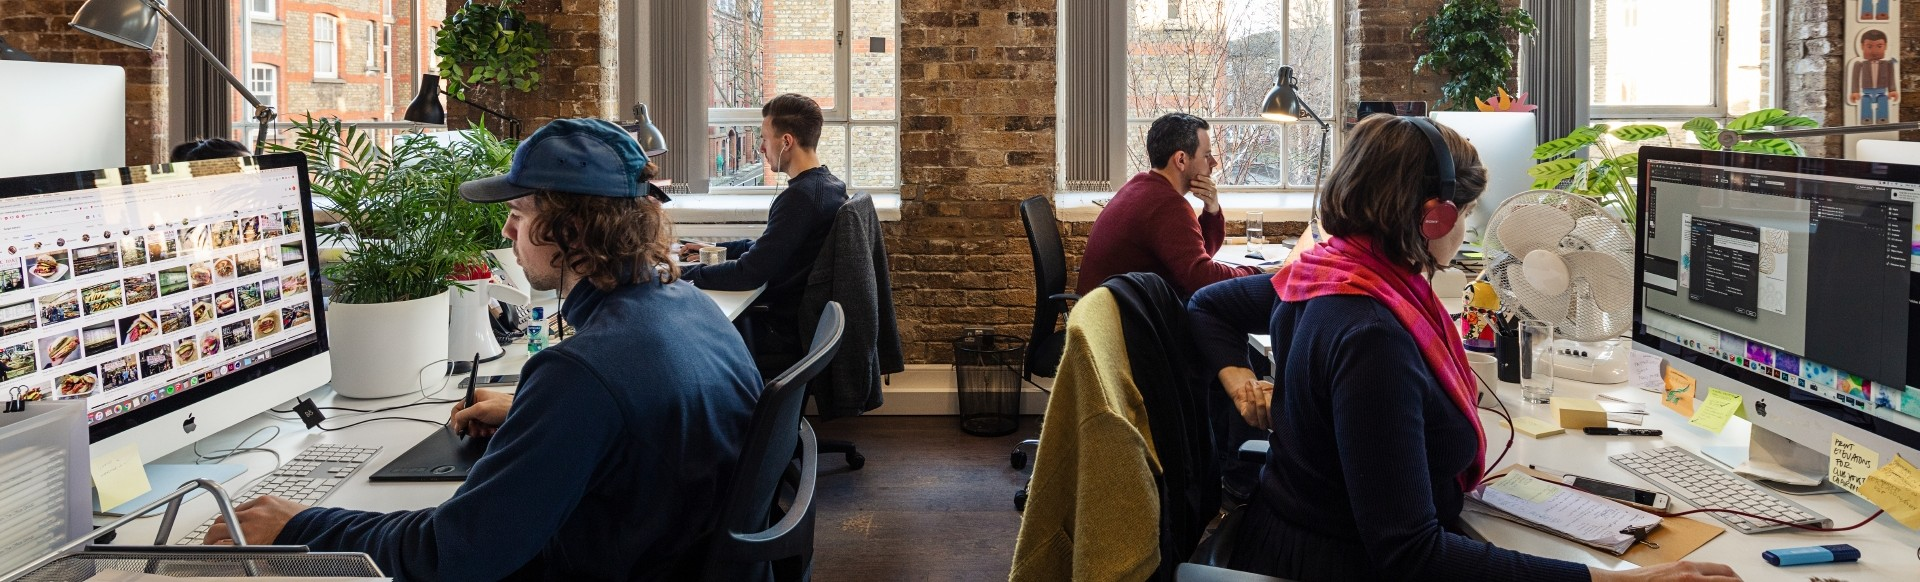 Four employees working in a trendy brick office with plants and iMac computers.